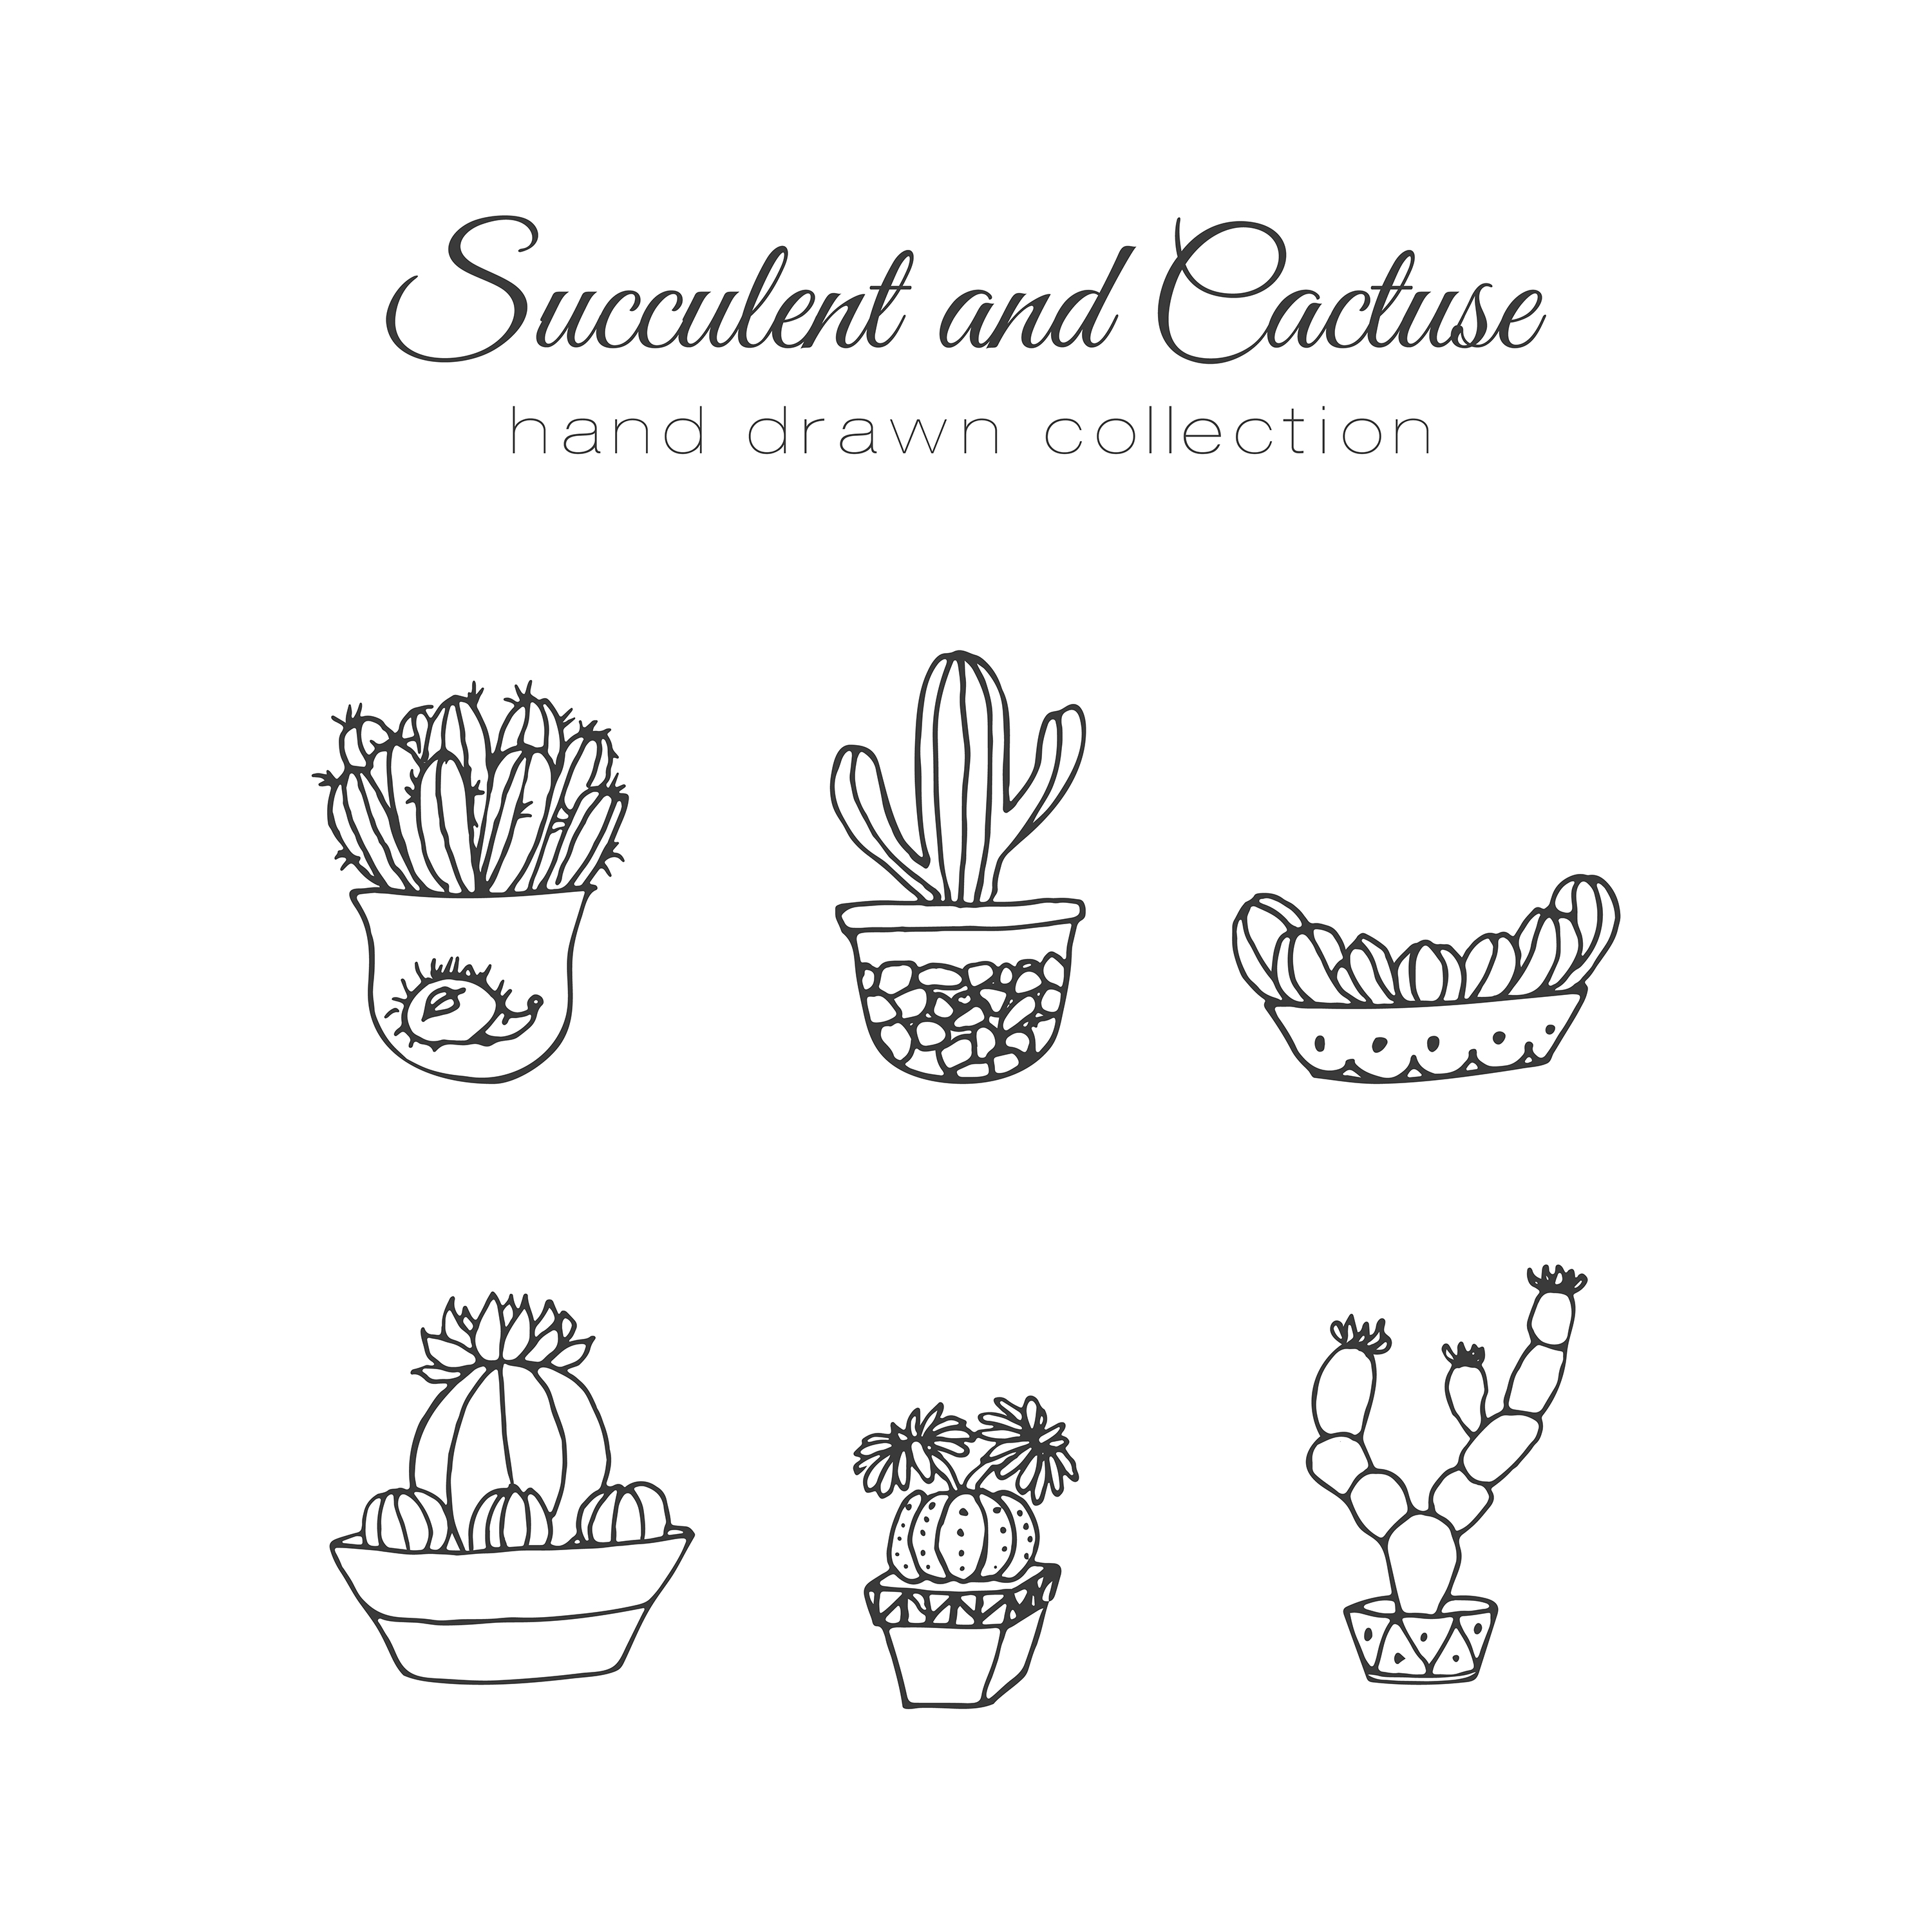 Cactus Illustration Vector Succulent And Cacti Hand Drawn